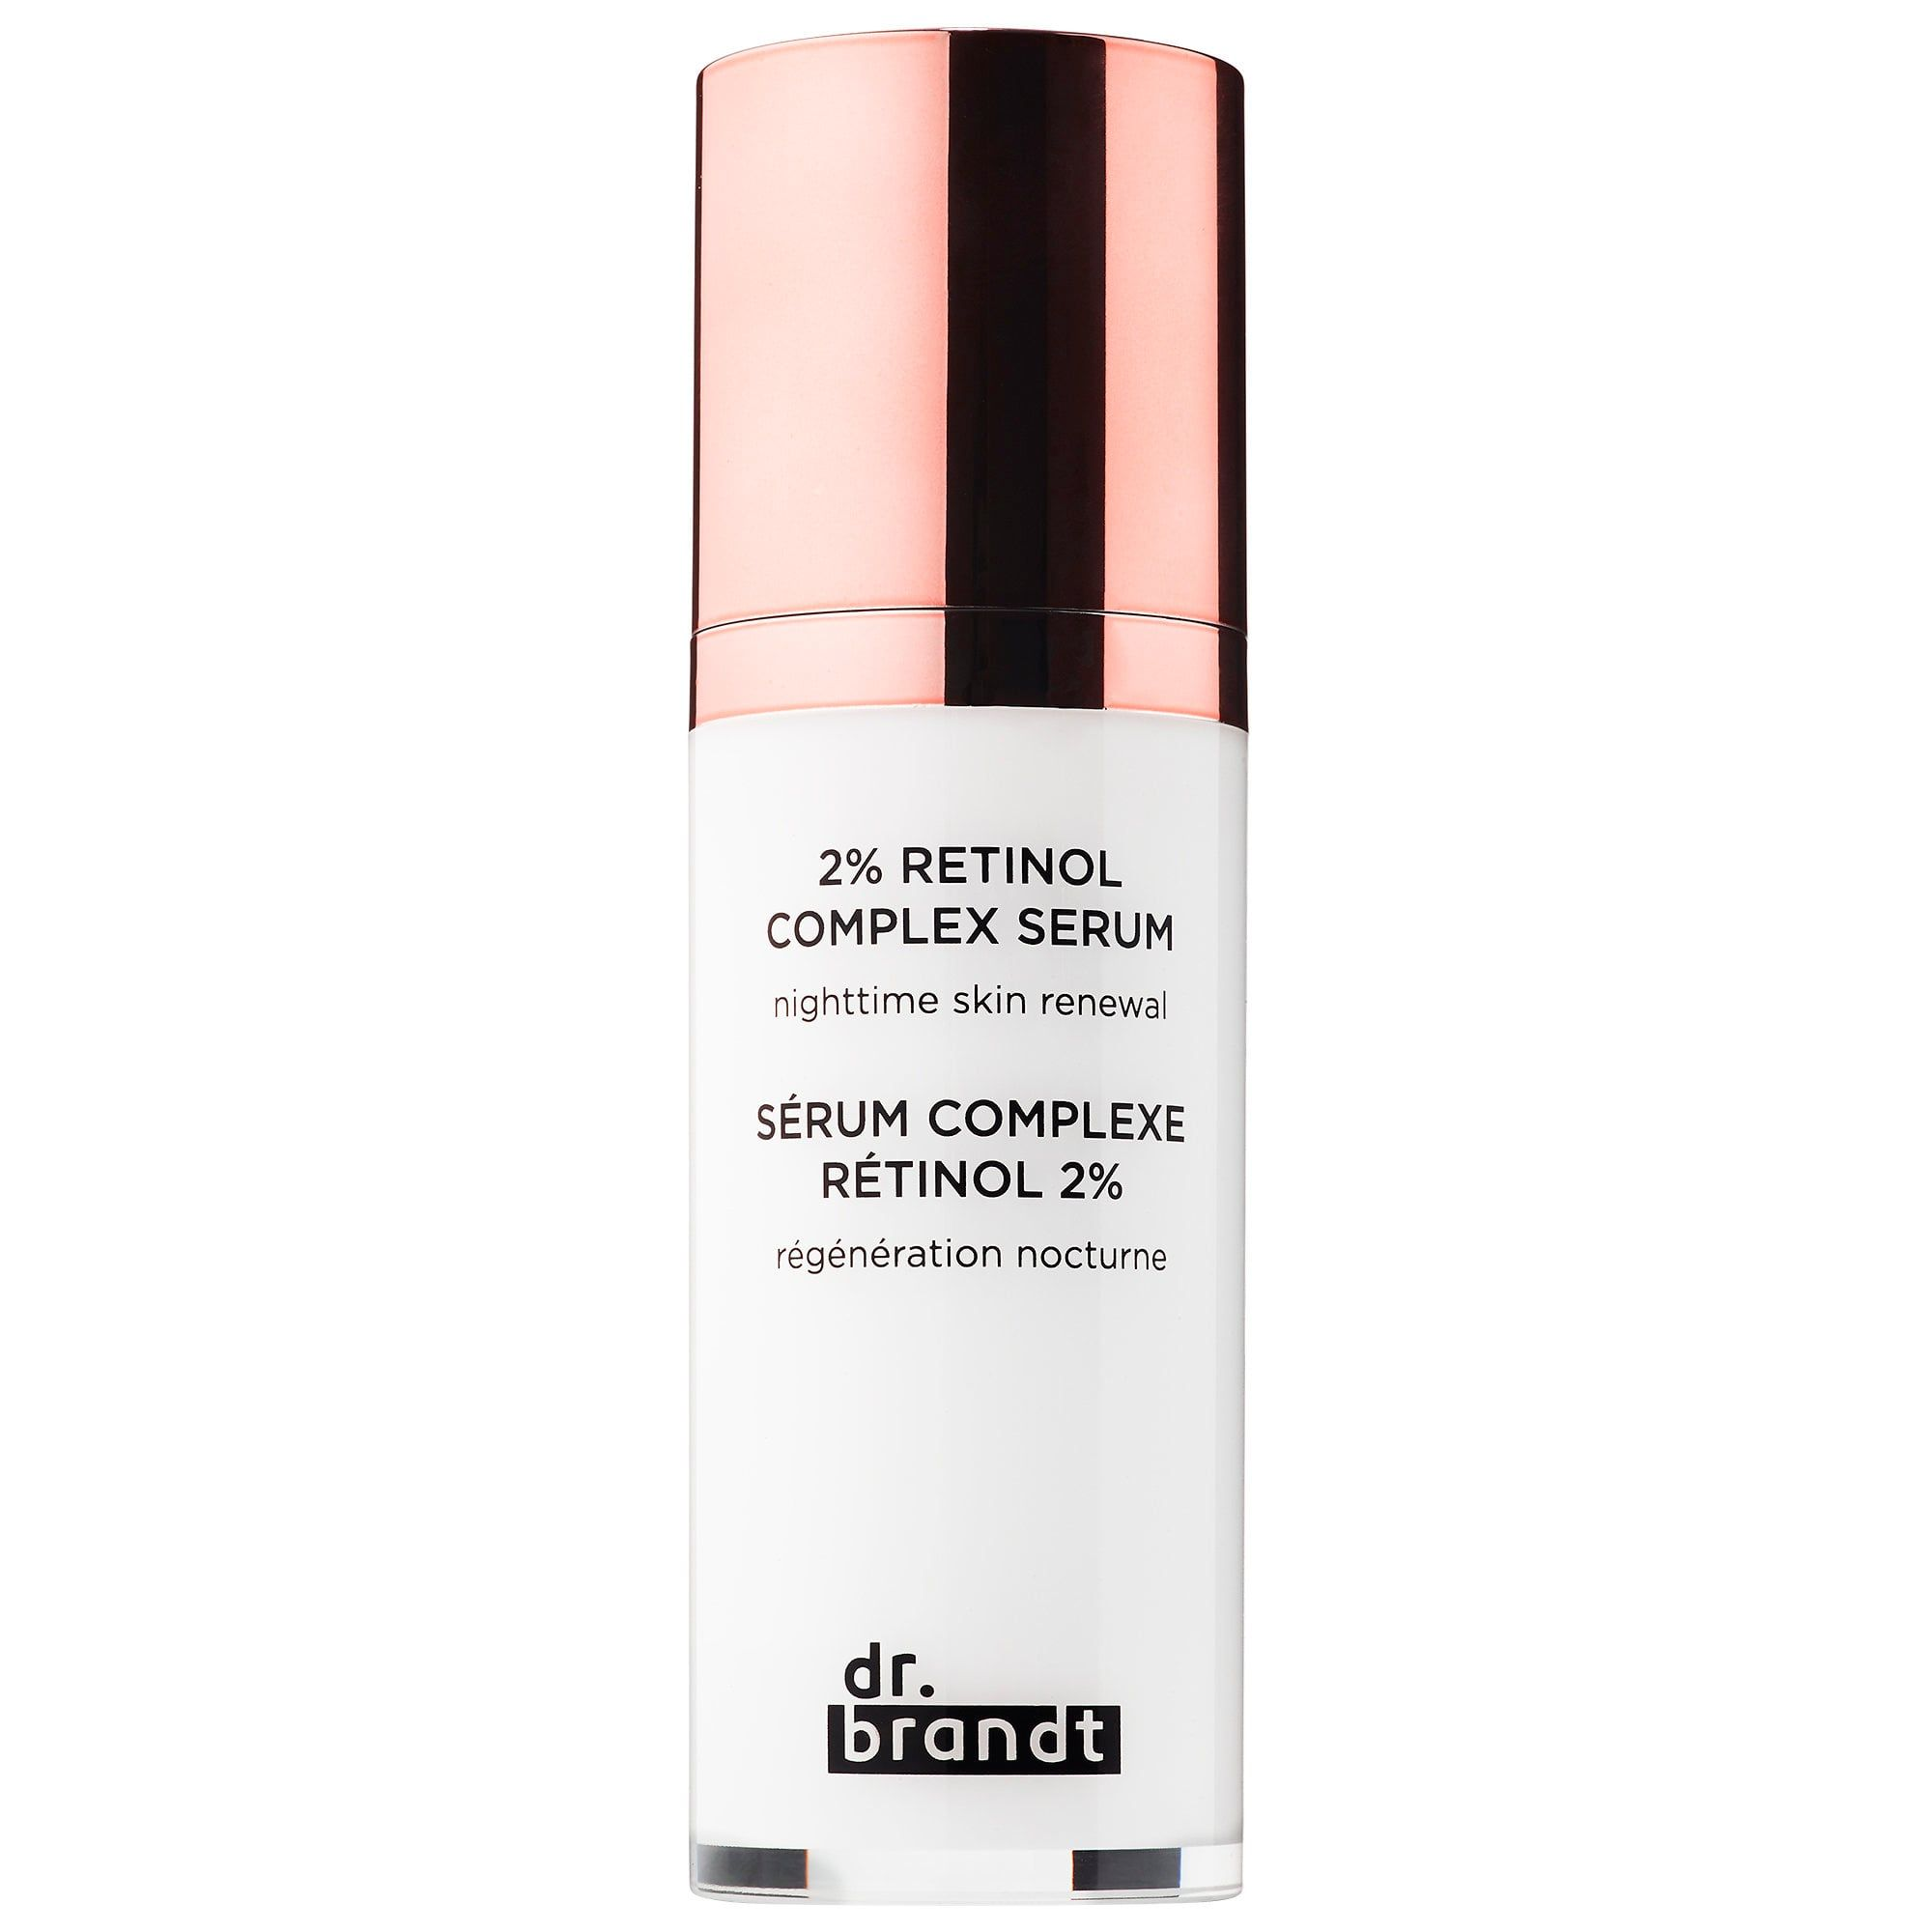 New Hydopeptide Tinted Spf Solar Defense Boutique Tinted Spf Spf Tints